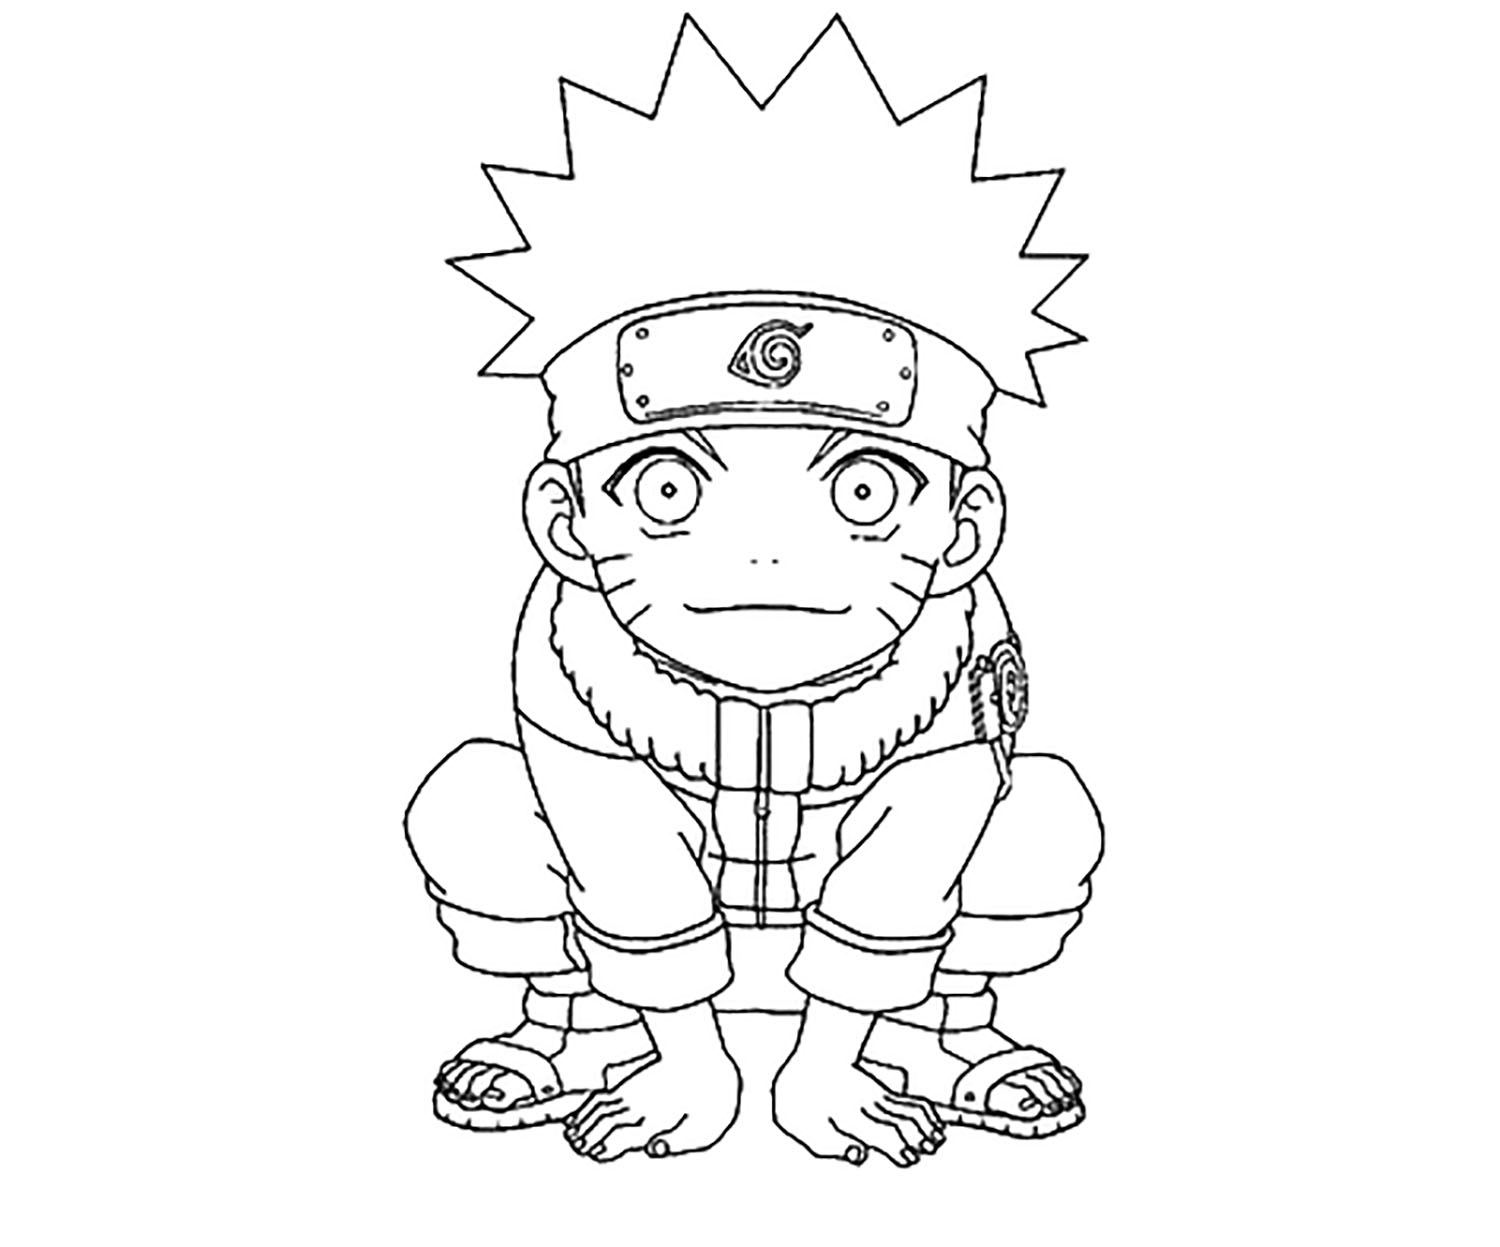 Naruto coloring page to print and color